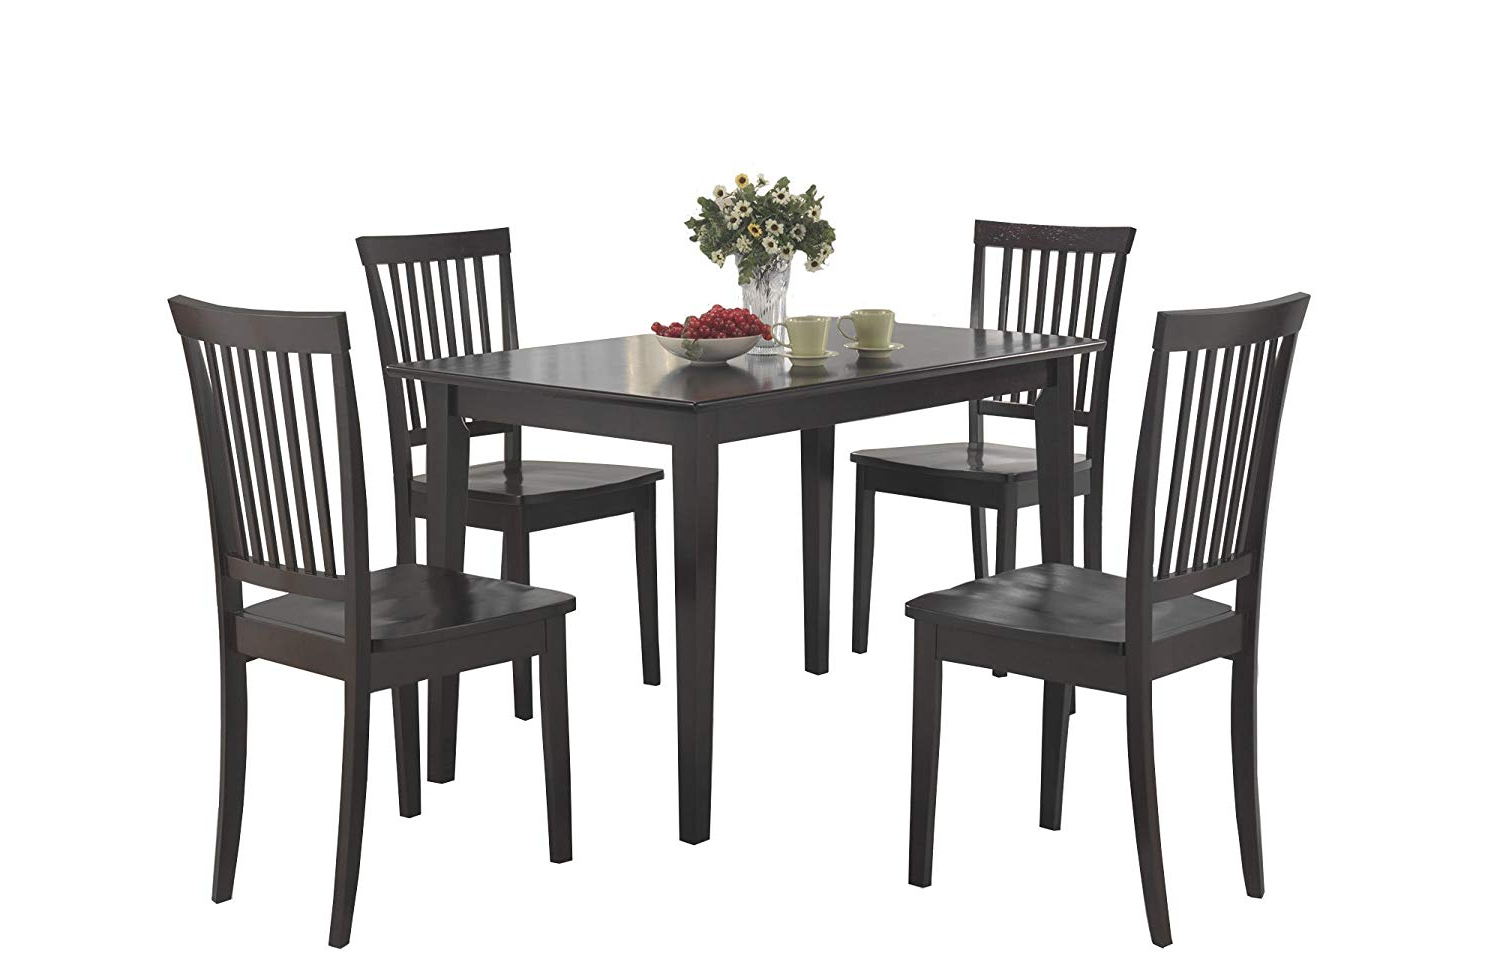 Amazon – Coaster 5 Piece Dining Set, Table Top With 4 Chairs Inside 2019 Kieffer 5 Piece Dining Sets (View 3 of 25)